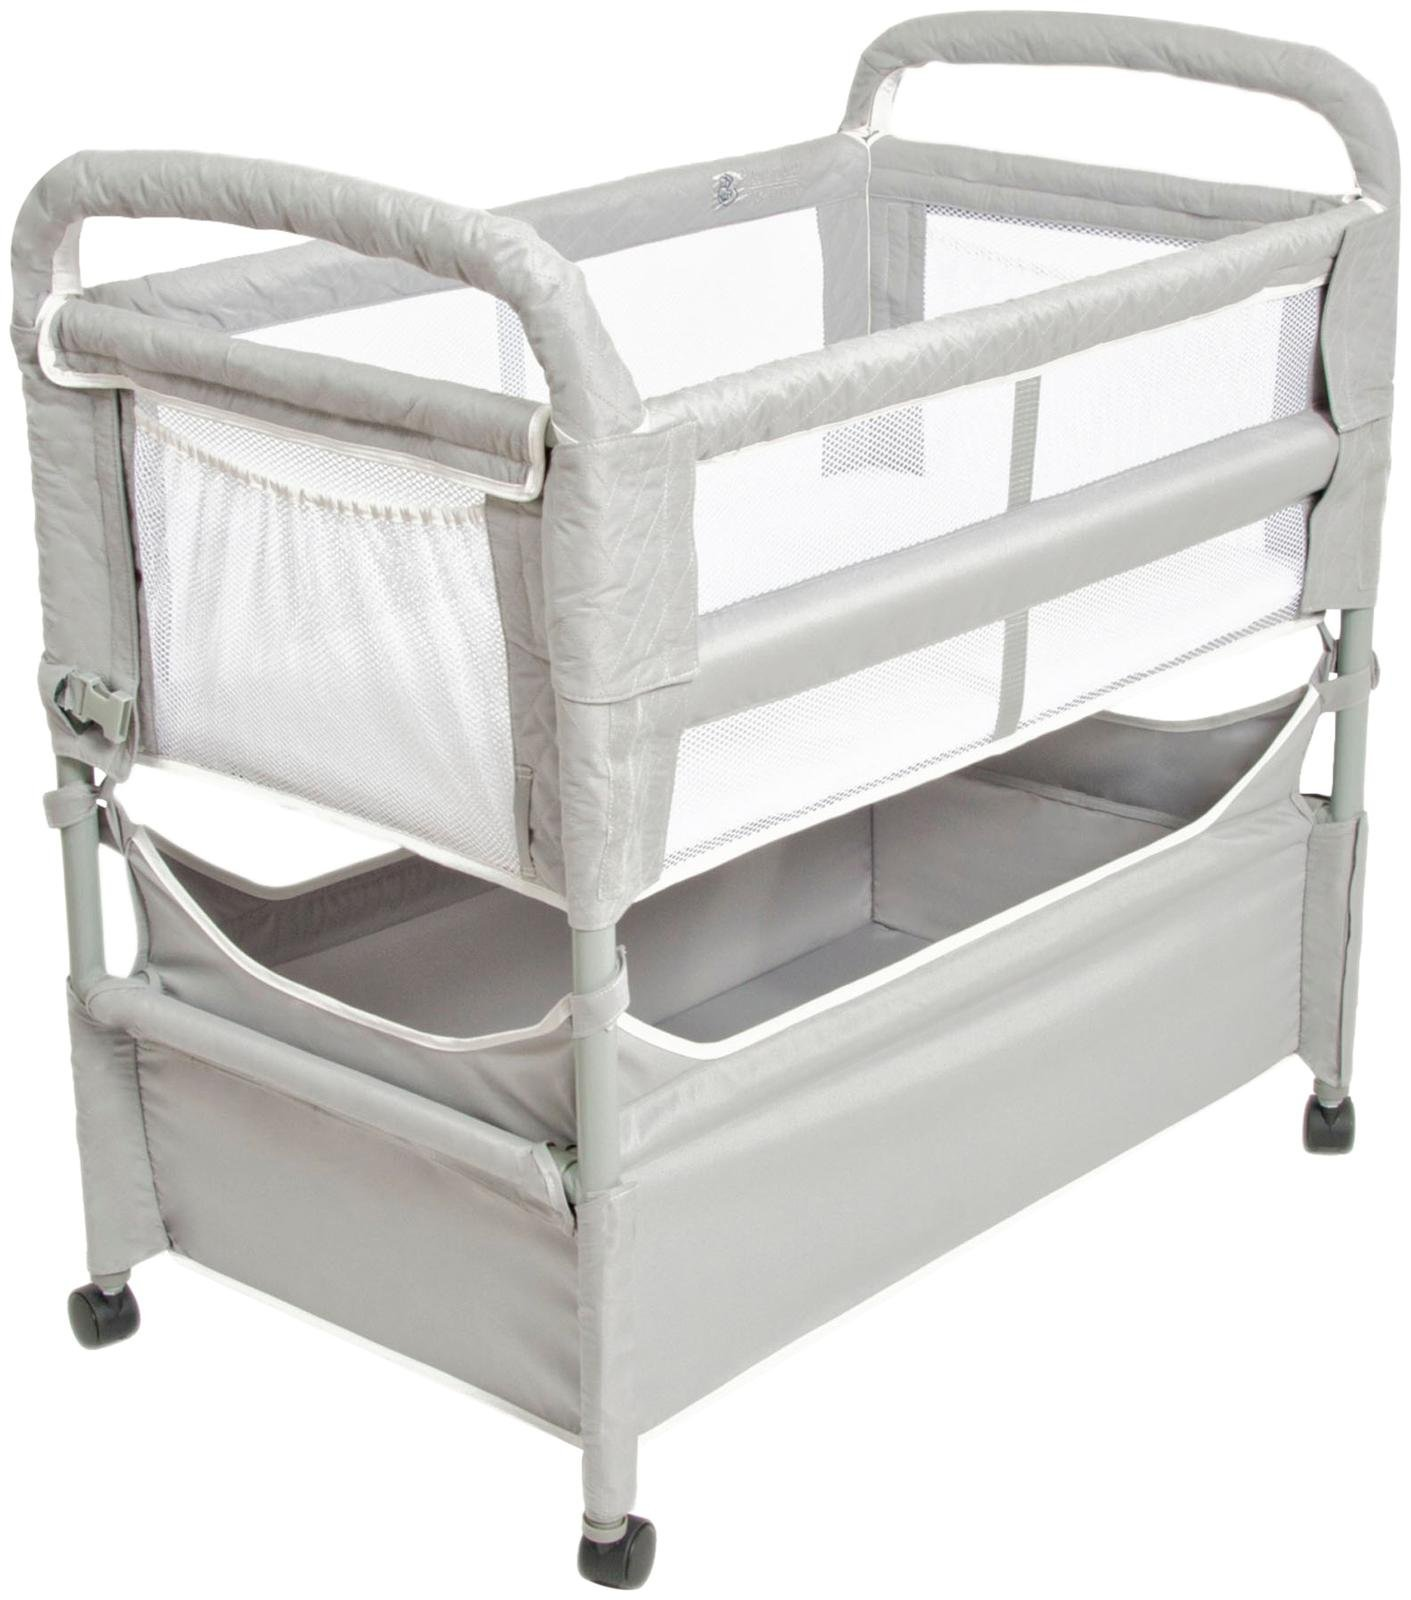 Best Rated In Bassinet Bedding Sets Amp Helpful Customer